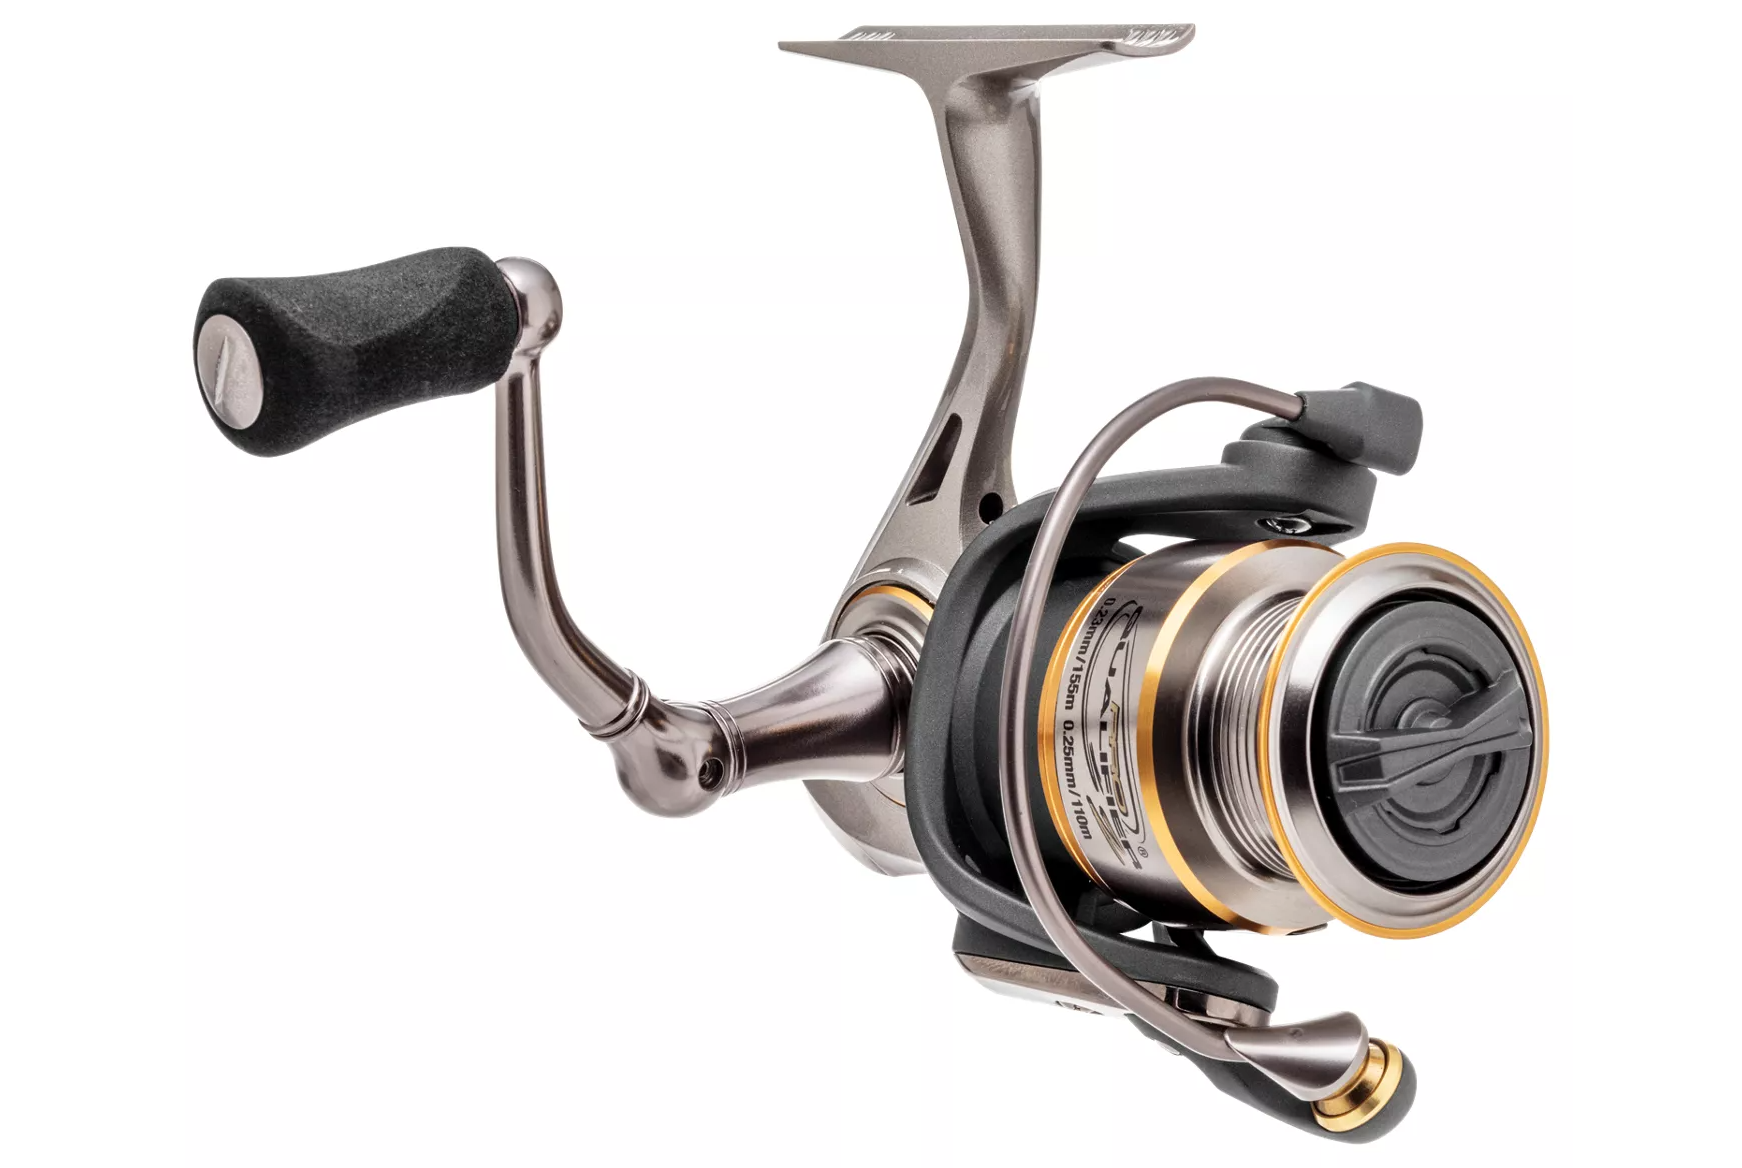 Bass Pro Shops Pro Qualifier 2 Spinning Reel – Only $59.97